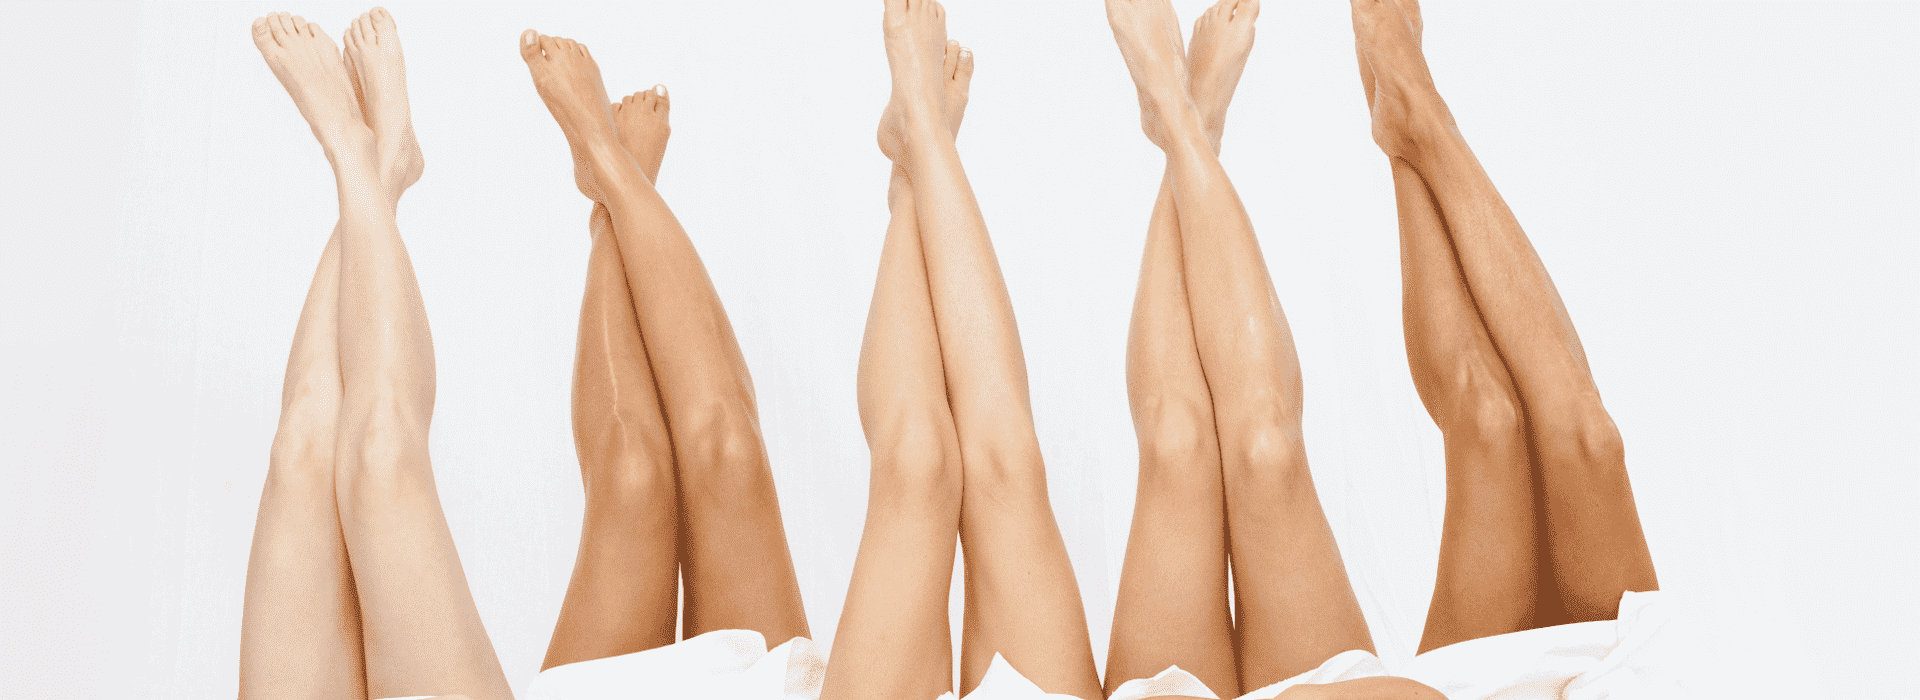 plastic surgery hair removal 1